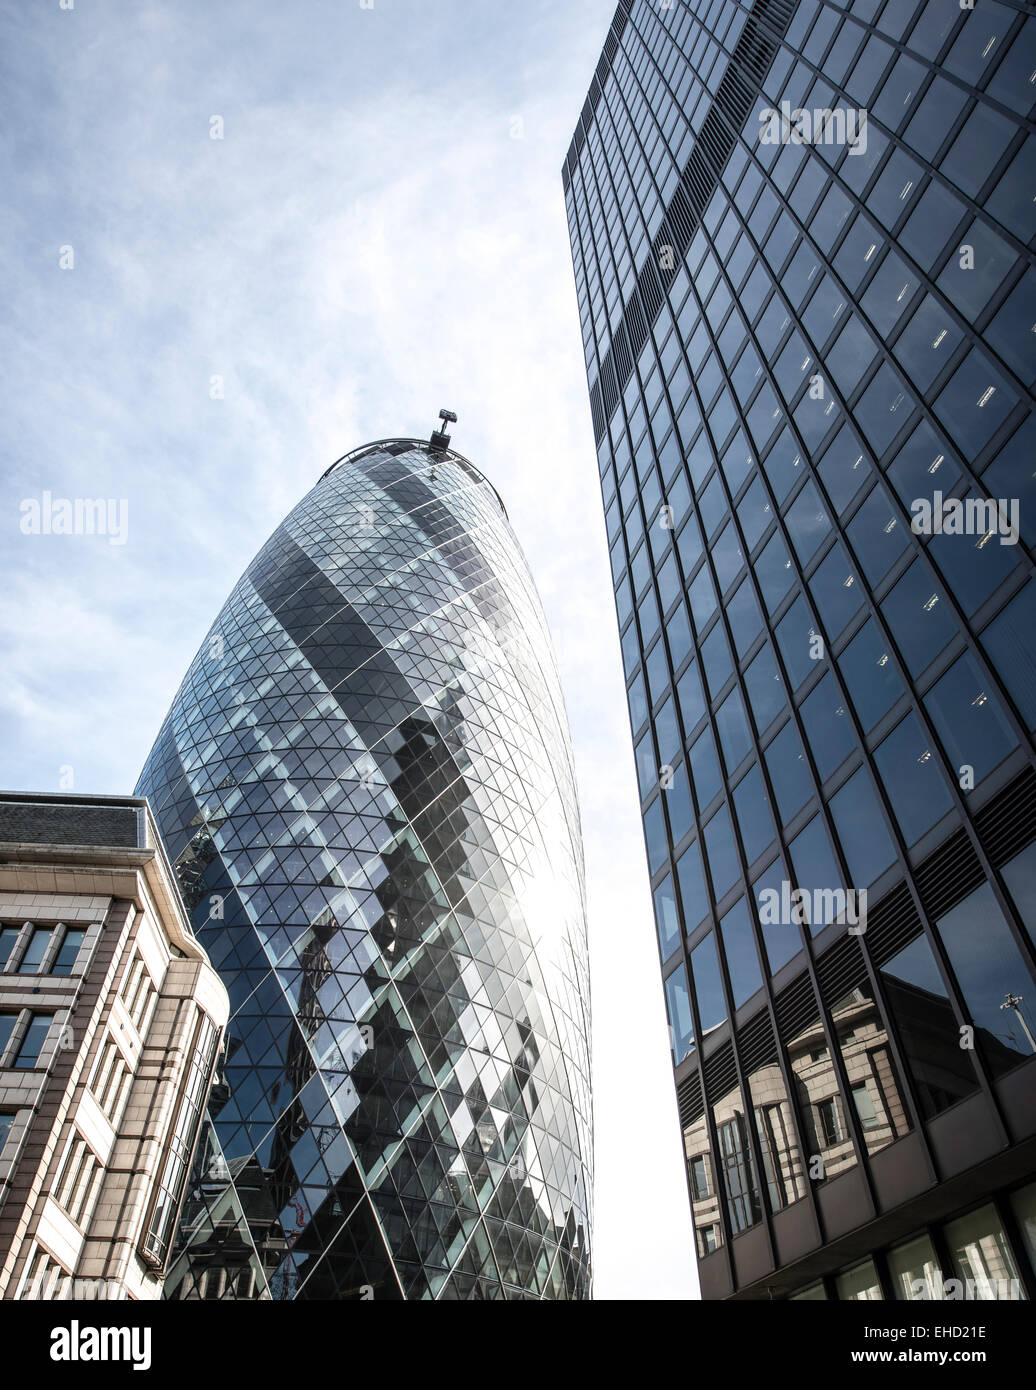 The Gherkin, London - Stock Image